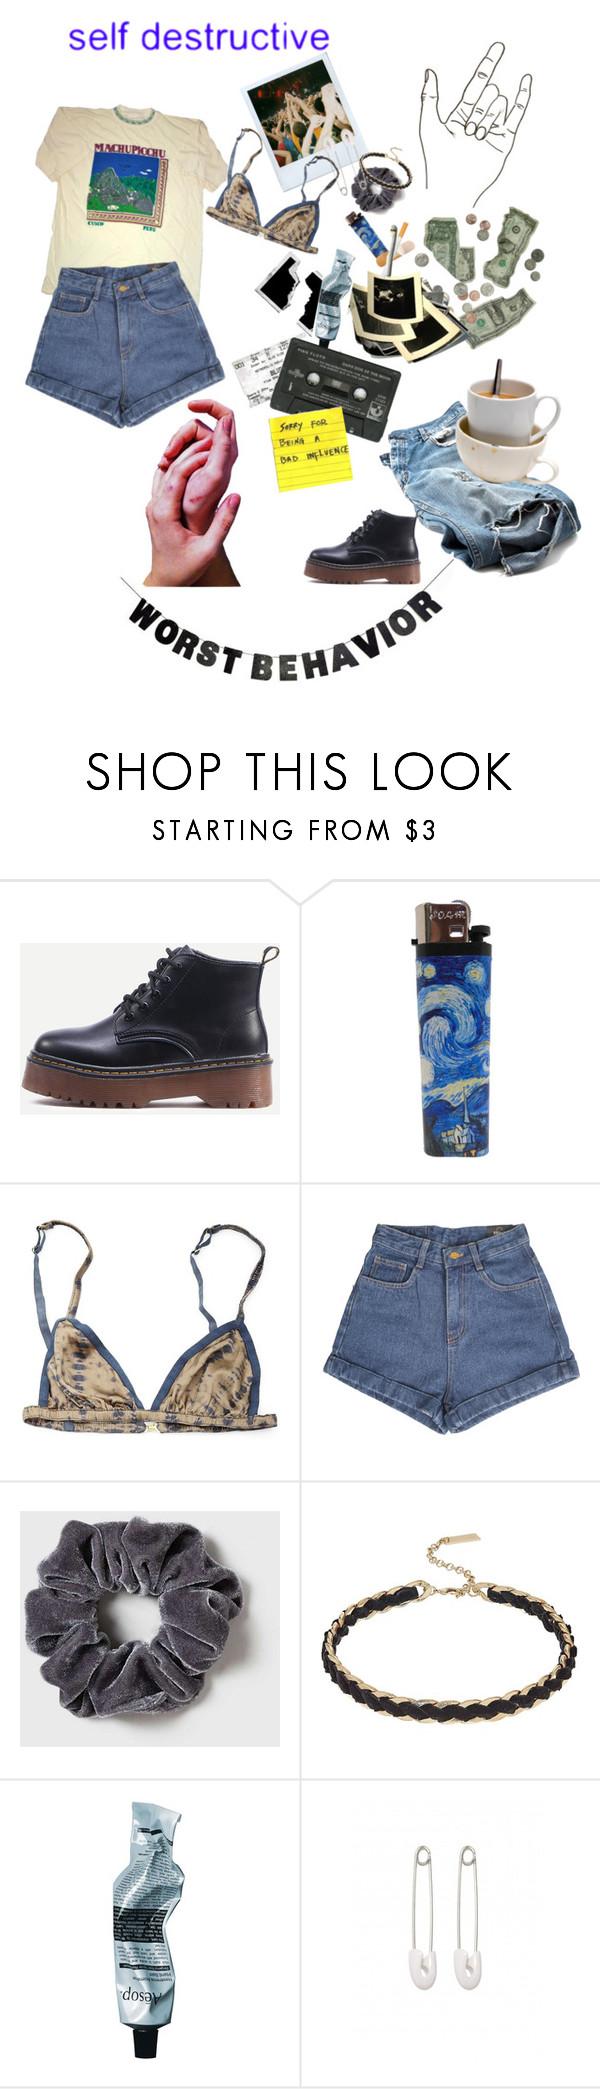 """""""Whatever man!"""" by bloss-umm ❤ liked on Polyvore featuring Rabens Saloner, Dorothy Perkins, Steve Madden, Aesop, Kristin Cavallari and WALL"""